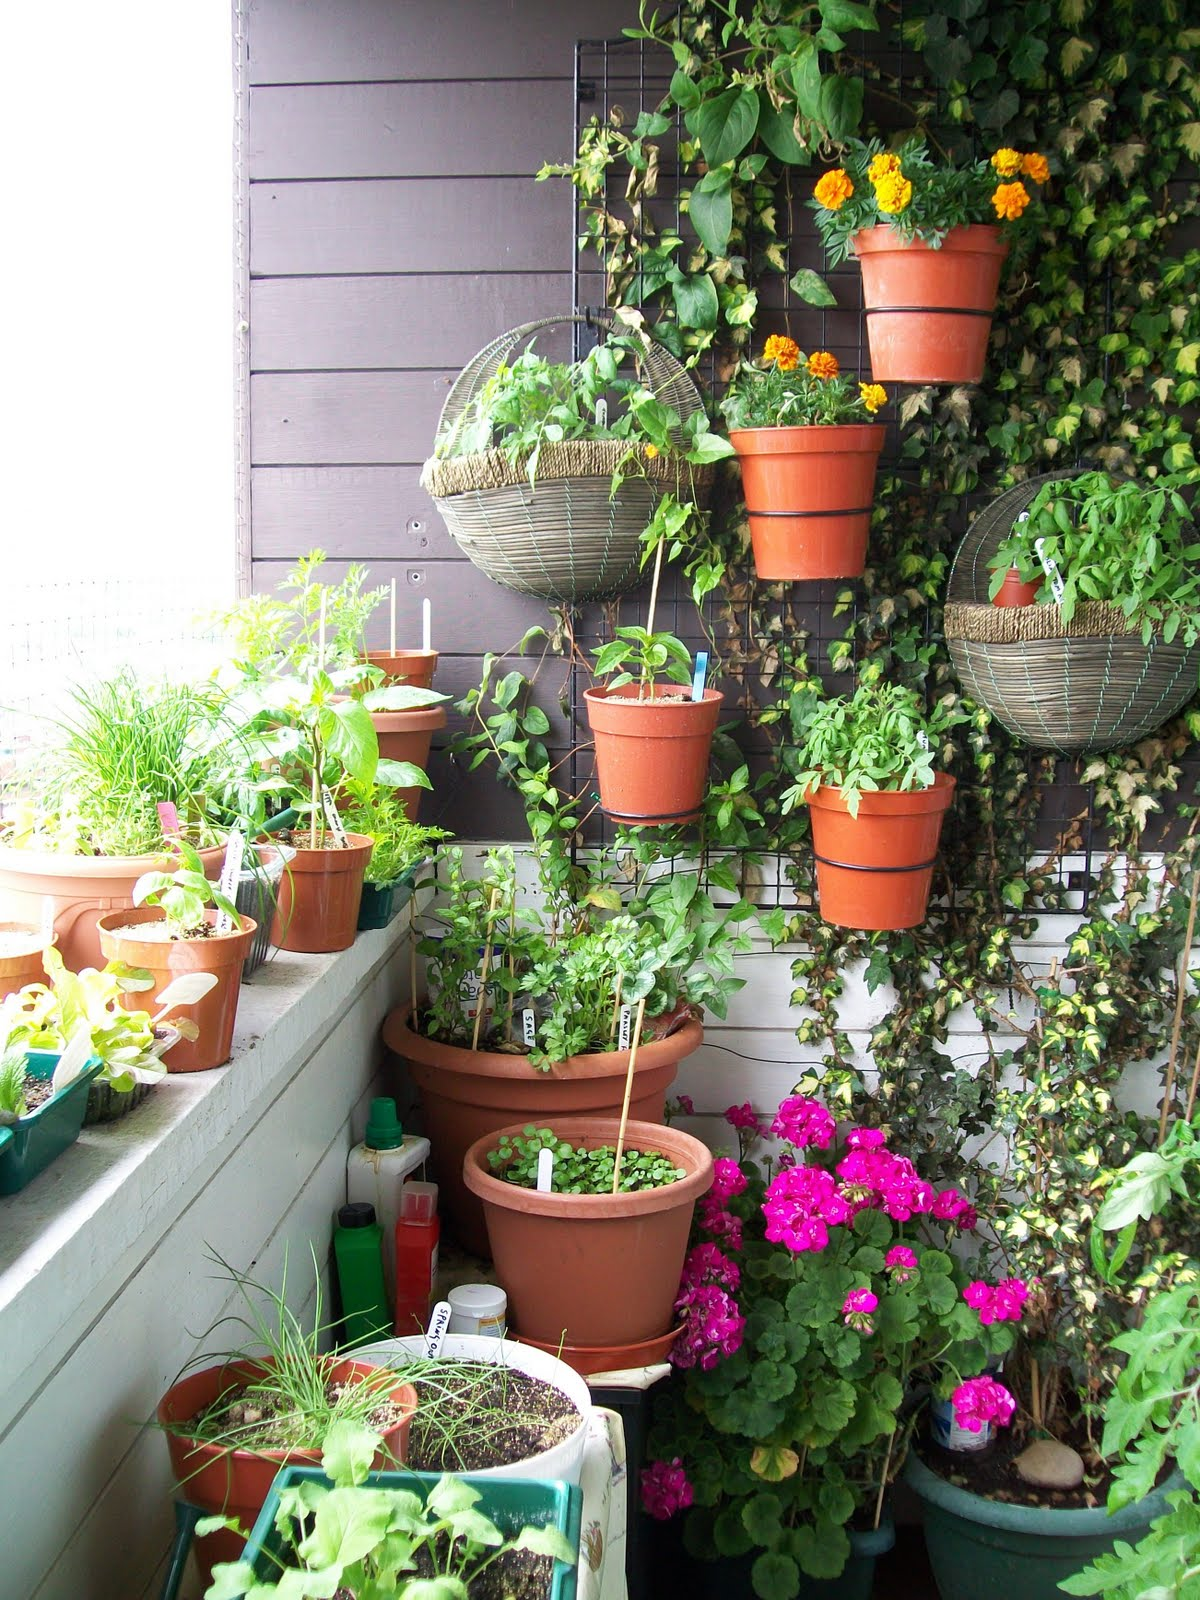 Balcony garden that makes use of the vertical space